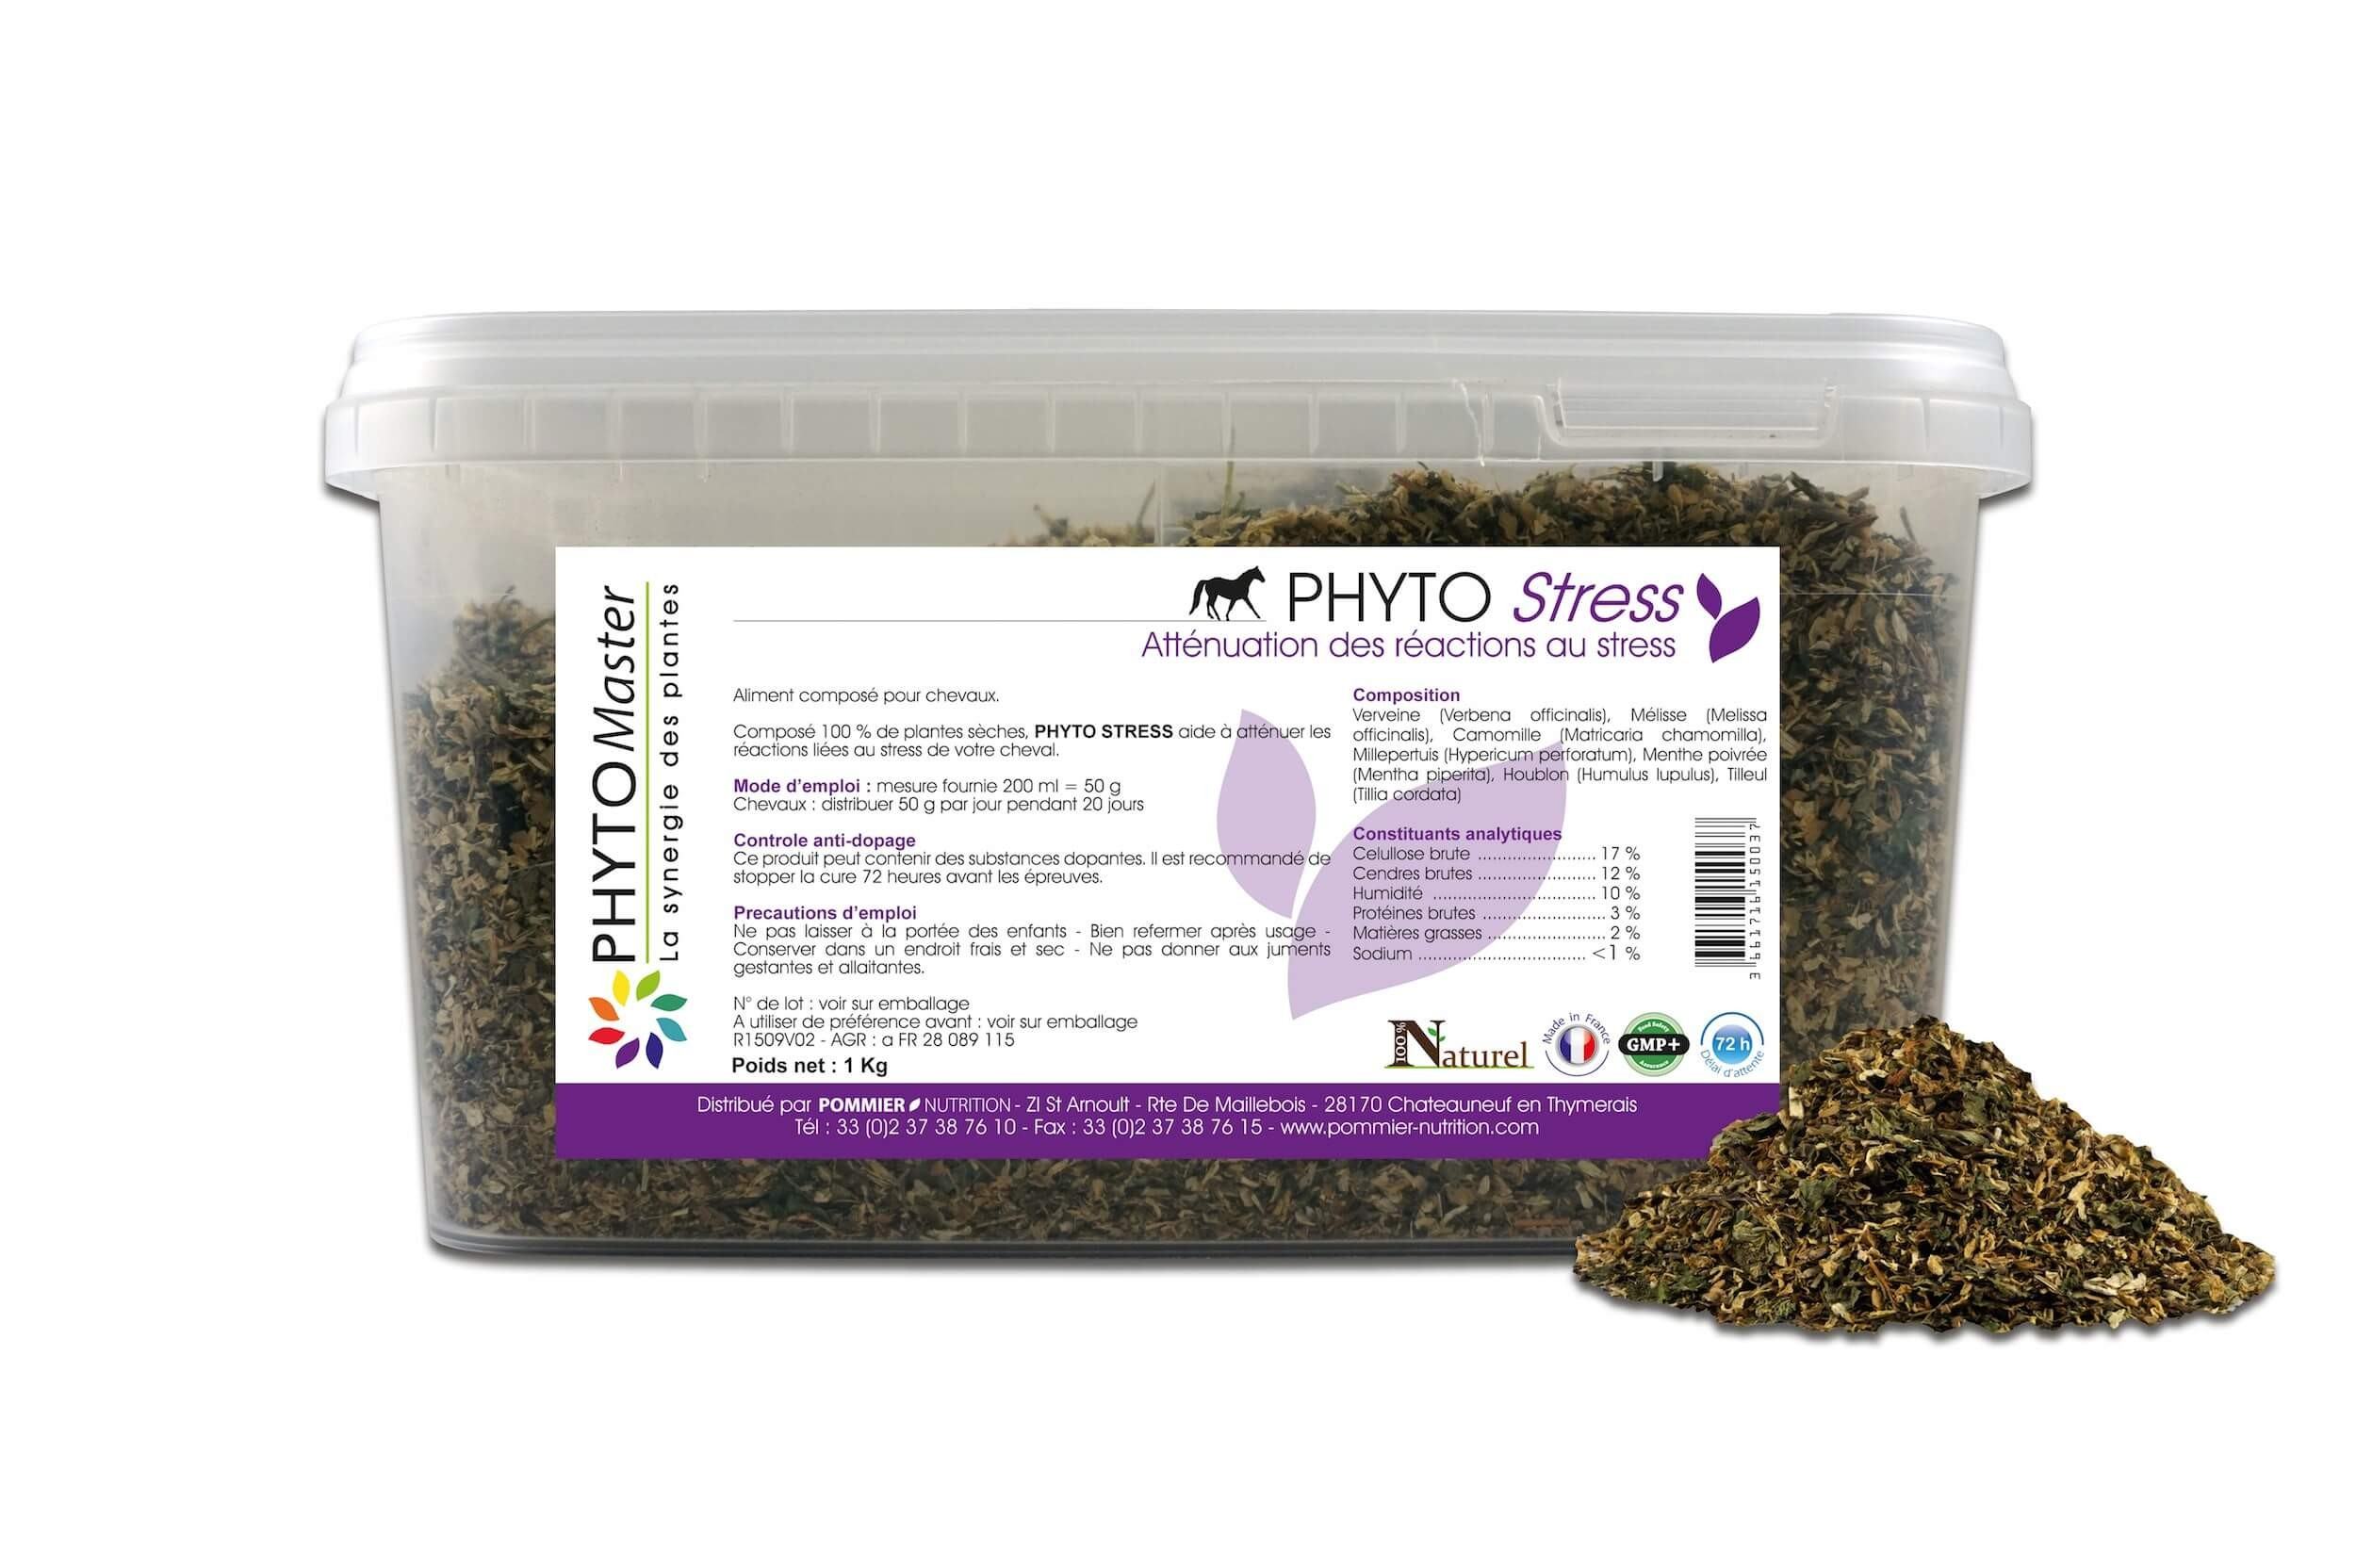 Phyto Master Stress 1 kg - La Compagnie des Animaux